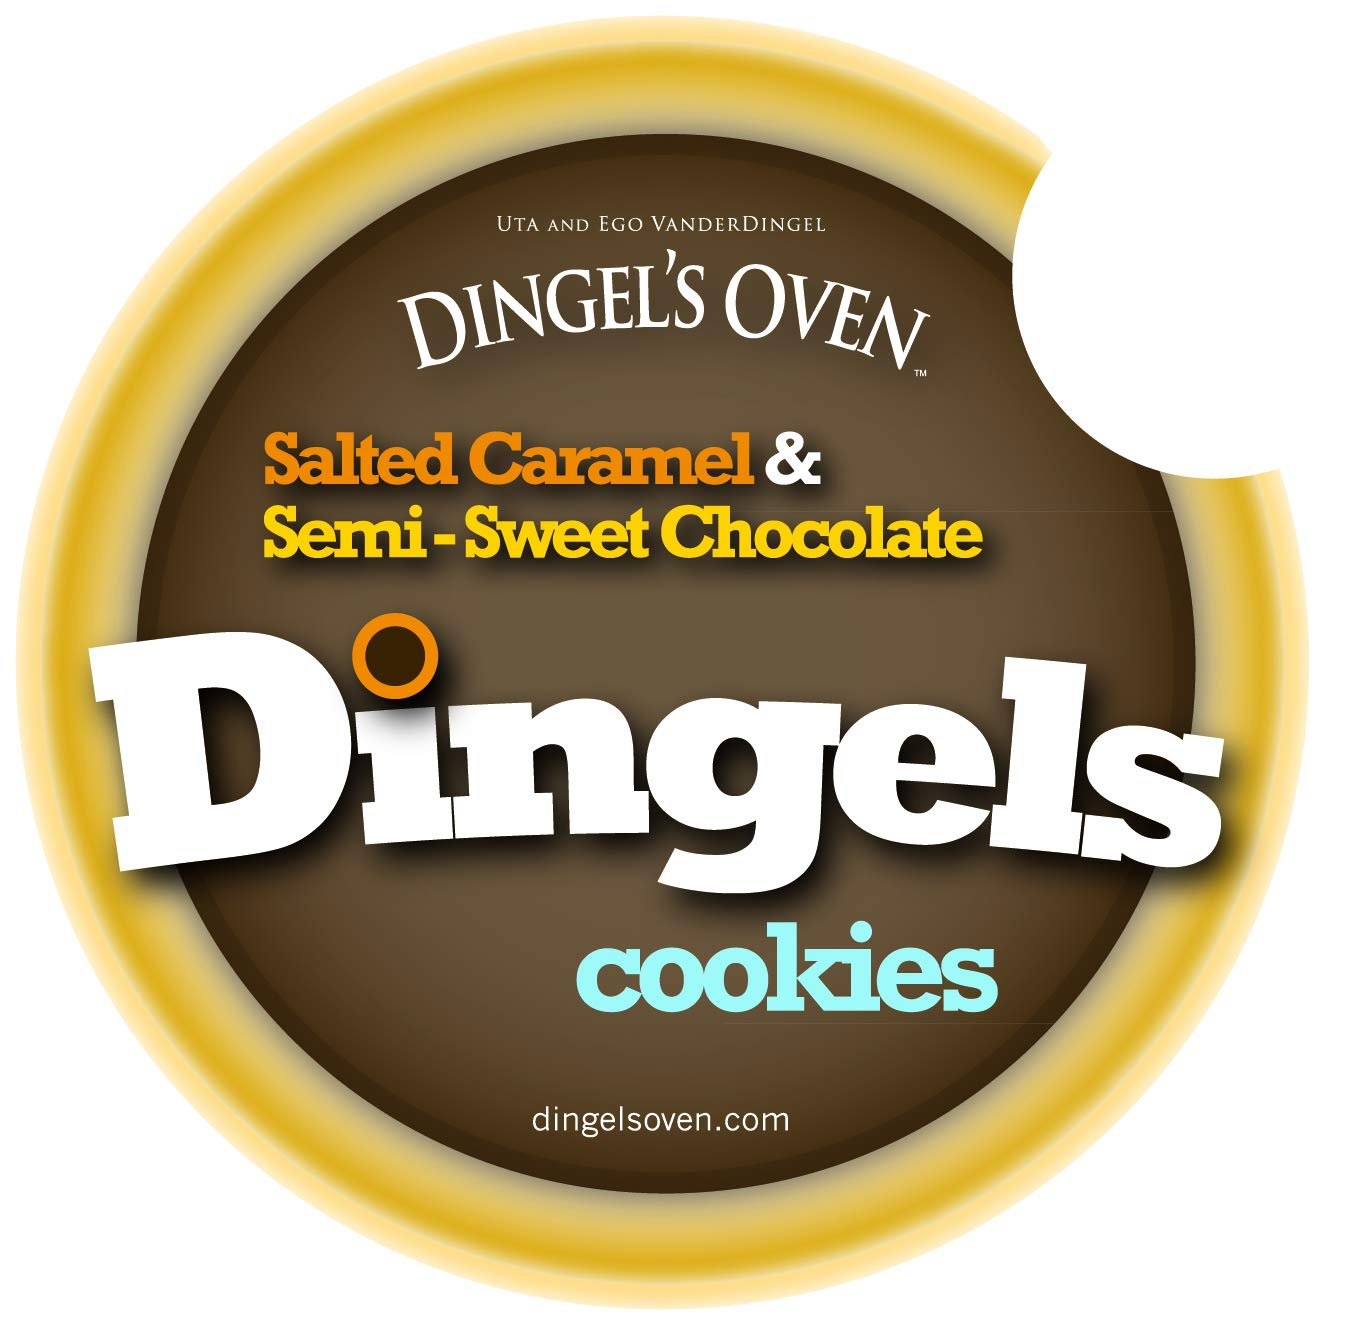 15 DINGELS cookies: Salted Caramel Semi-Sweet Guittard Chocolate Luxury Gourmet Shortbreads Buttery Crunchy Double-Deep Glazed INDULGE! by Dingel's Oven